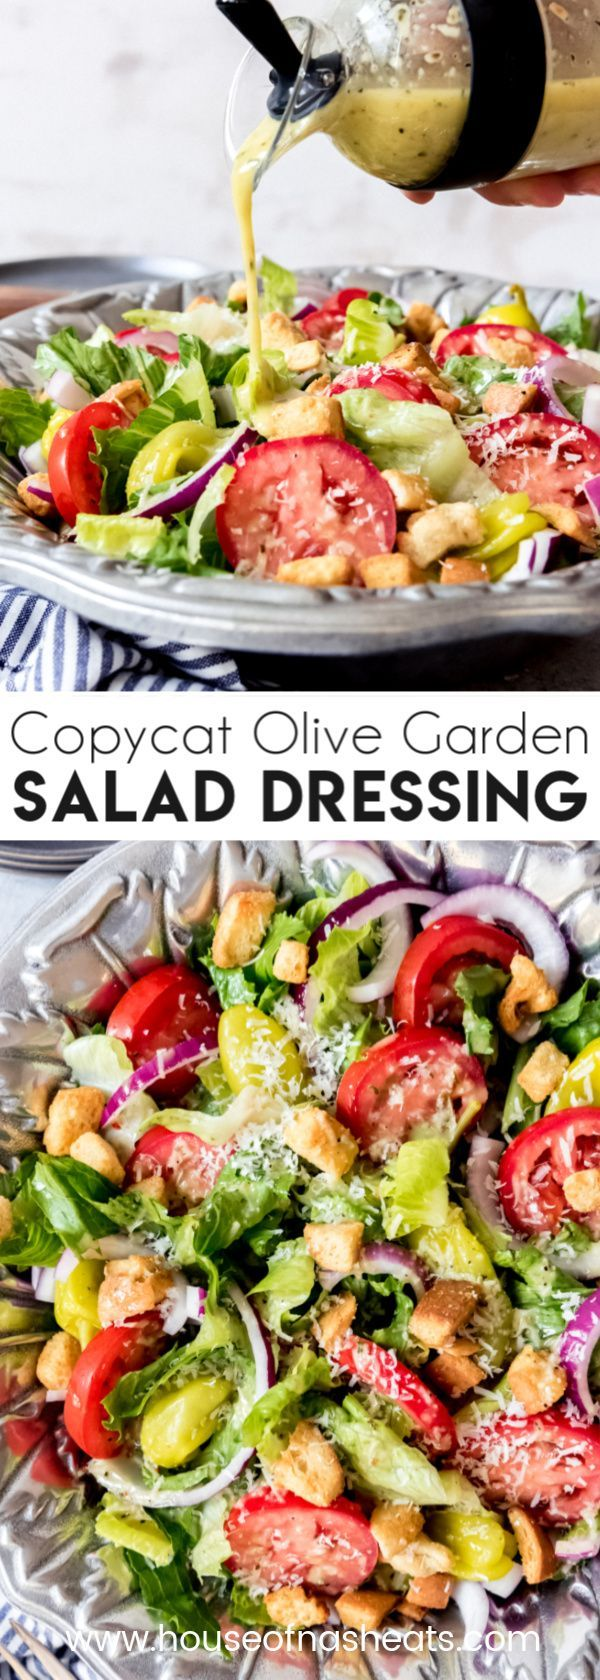 People are obsessed with this Copycat Olive Garden Salad